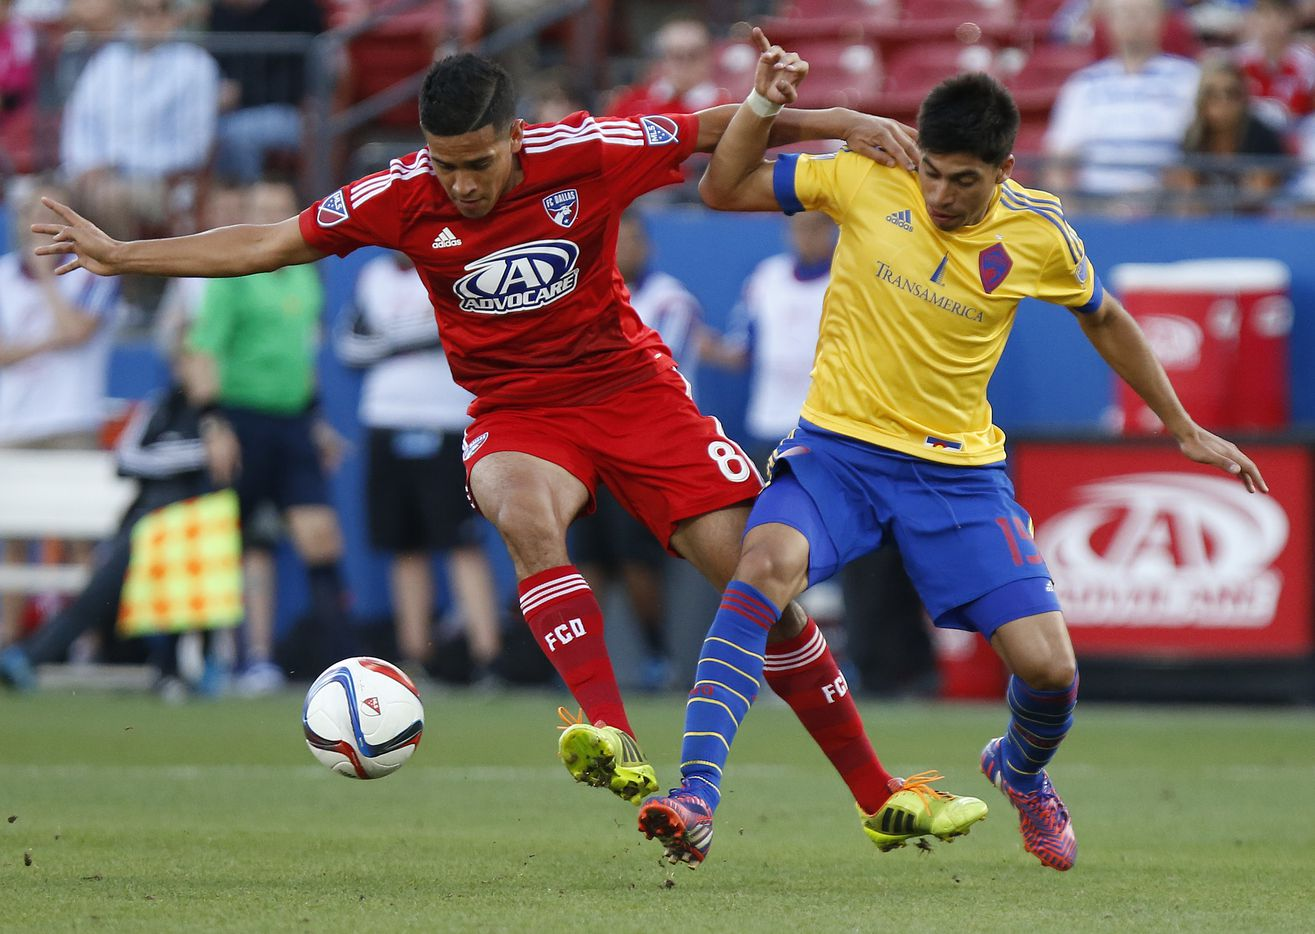 FC Dallas midfielder Victor Ulloa (8) battles for position with Rapids midfielder Juan Ramirez (15) during the second half as FC Dallas hosted the Colorado Rapids on Friday evening, April 10, 2015.  (Special Contributor/Stewart F. House)